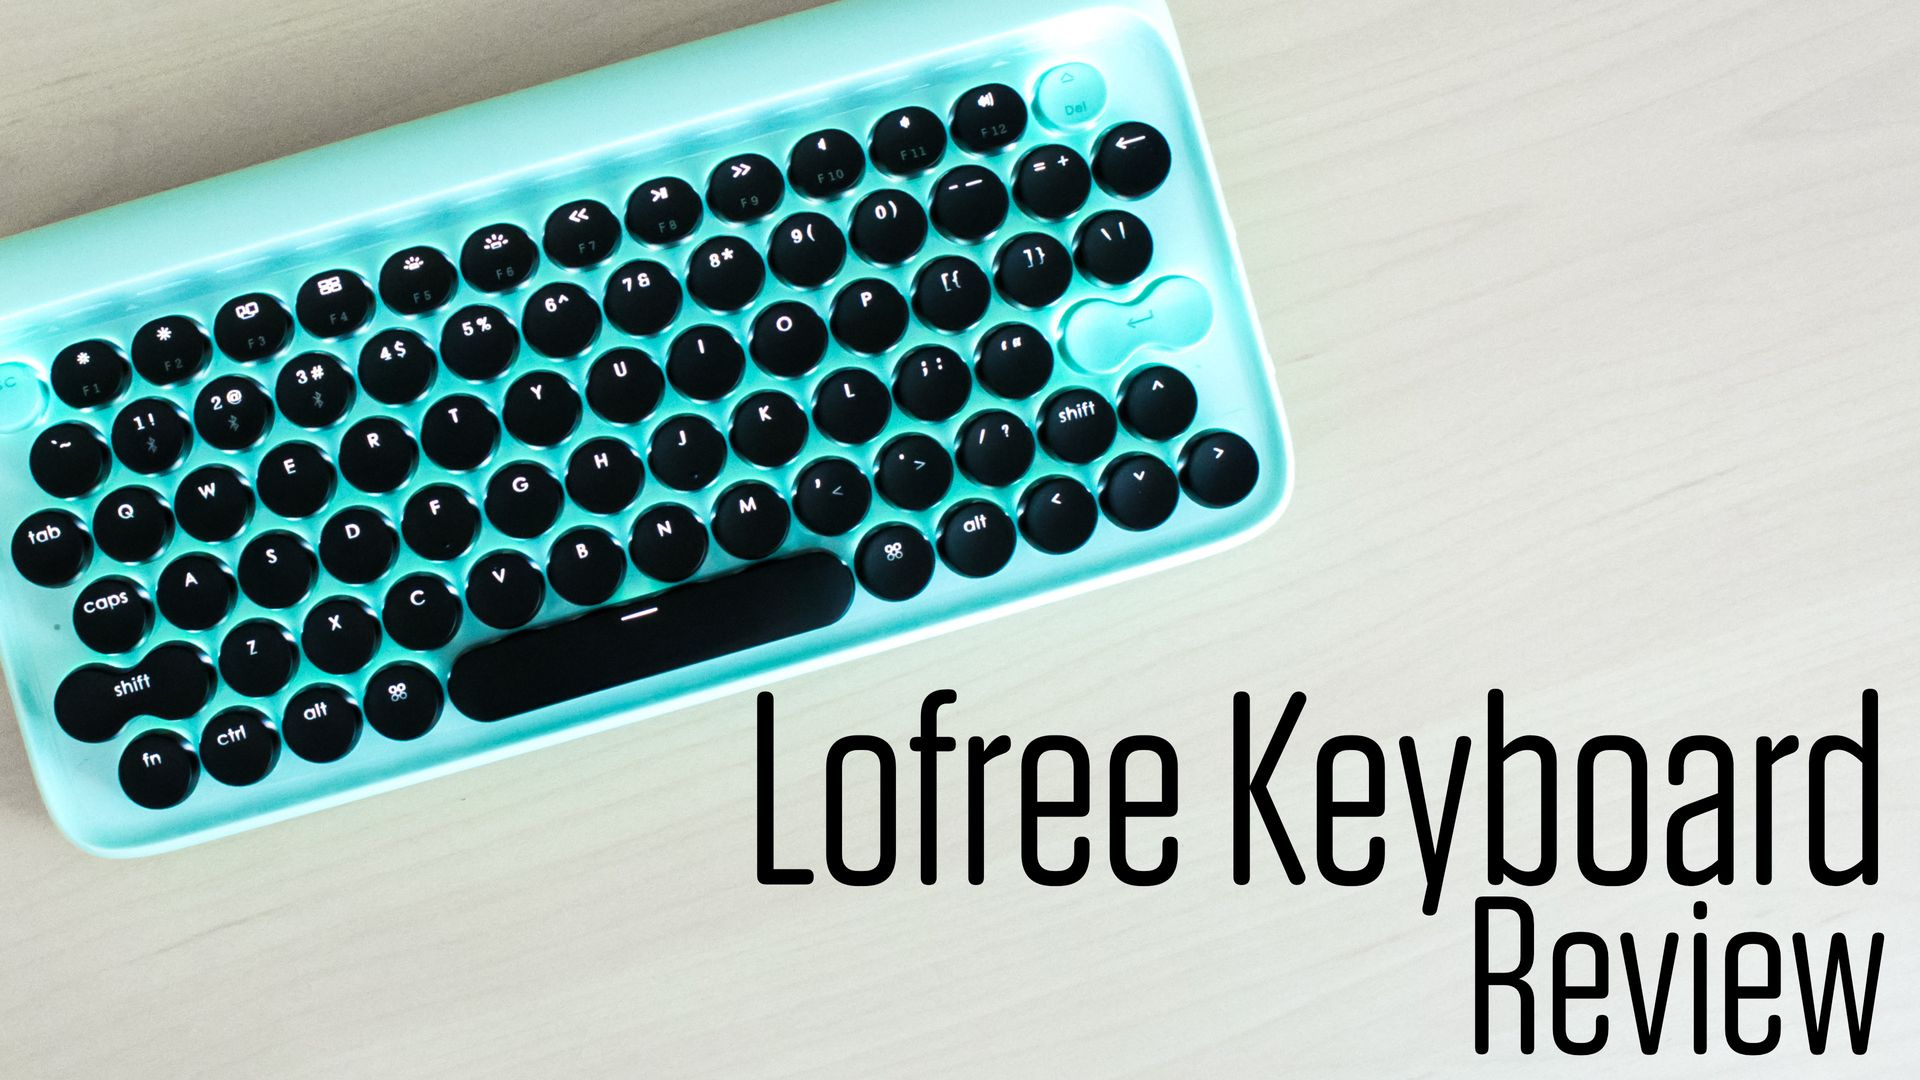 The Lofree Keyboard Review